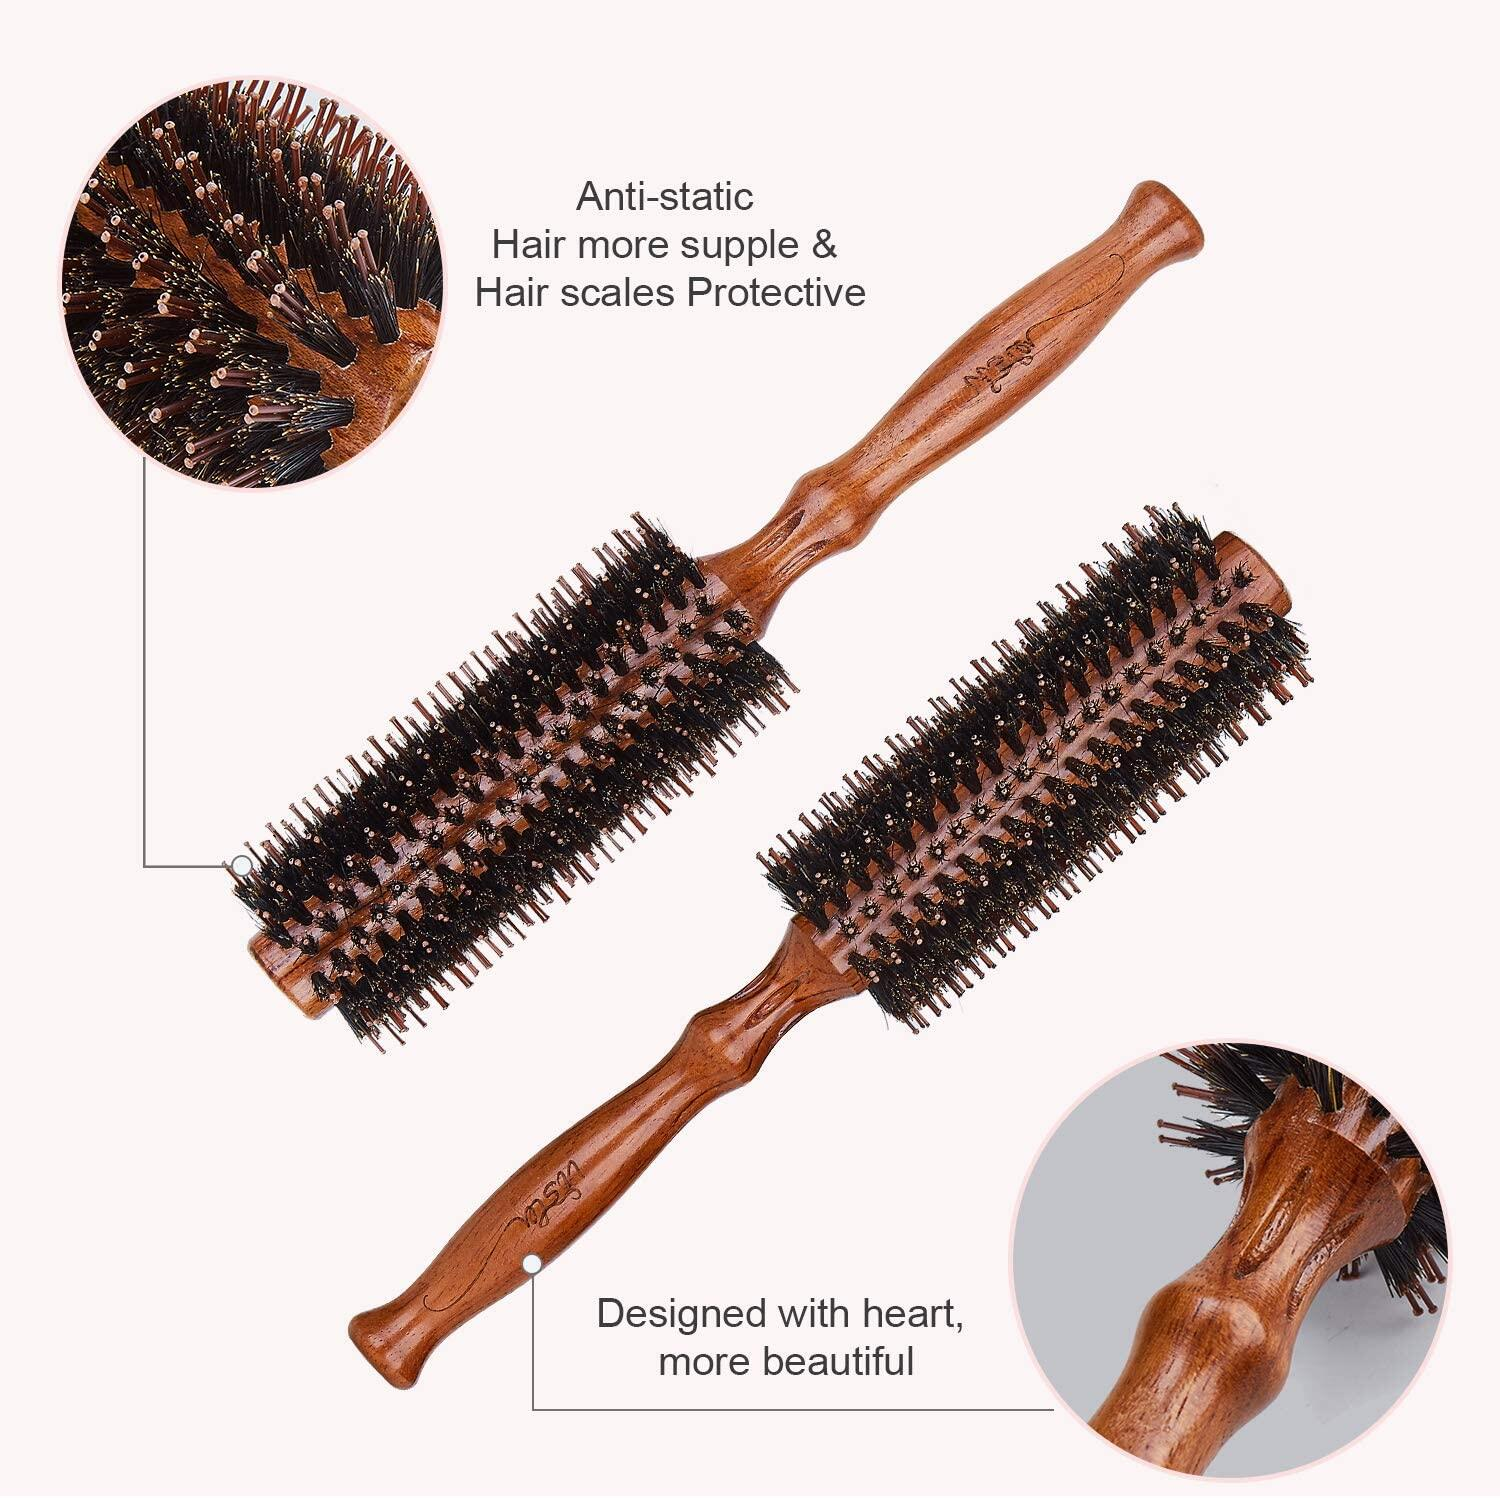 Vista Mens Hair Brush 1 Piece, Boar Bristle Brushes Anti Static Wooden Hair Care Easy to Manage Hair (Ruled)Vista Mens Hair Brush 1 Piece Boar Bristle Brushes Anti Static Wooden Hair Care Easy to Manage Hair (Ruled)Hair Brush